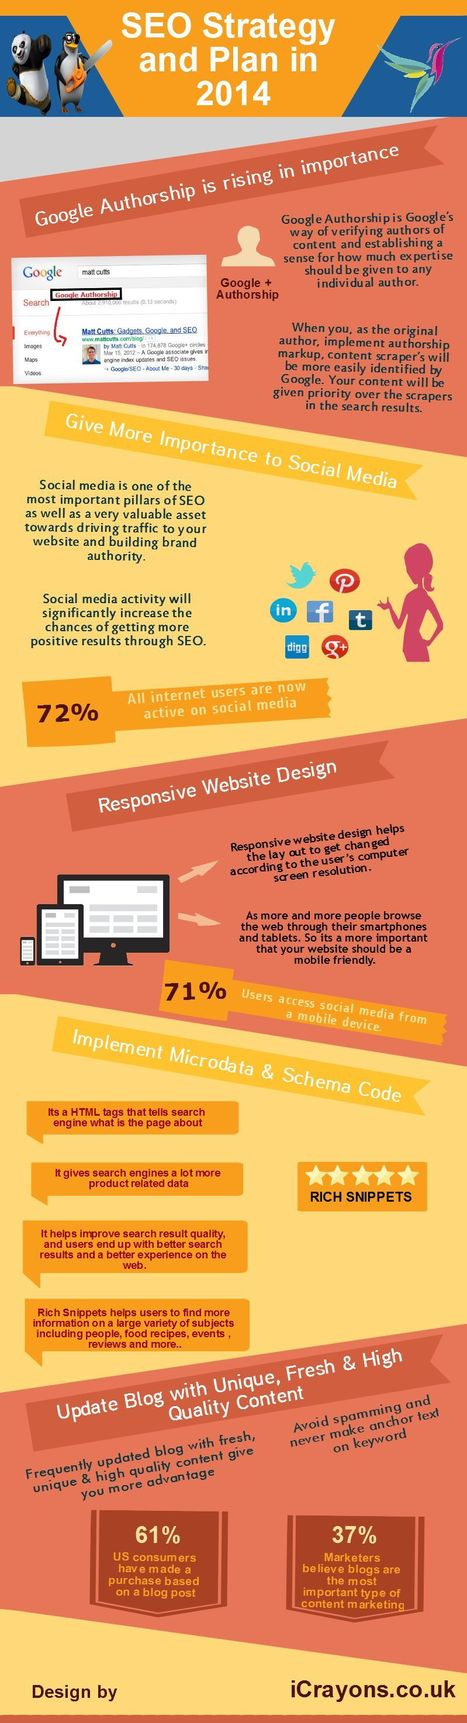 SEO Strategy and Plan for 2014   Web Design & Development, iPhone App, Android App Development and many more...   Scoop.it